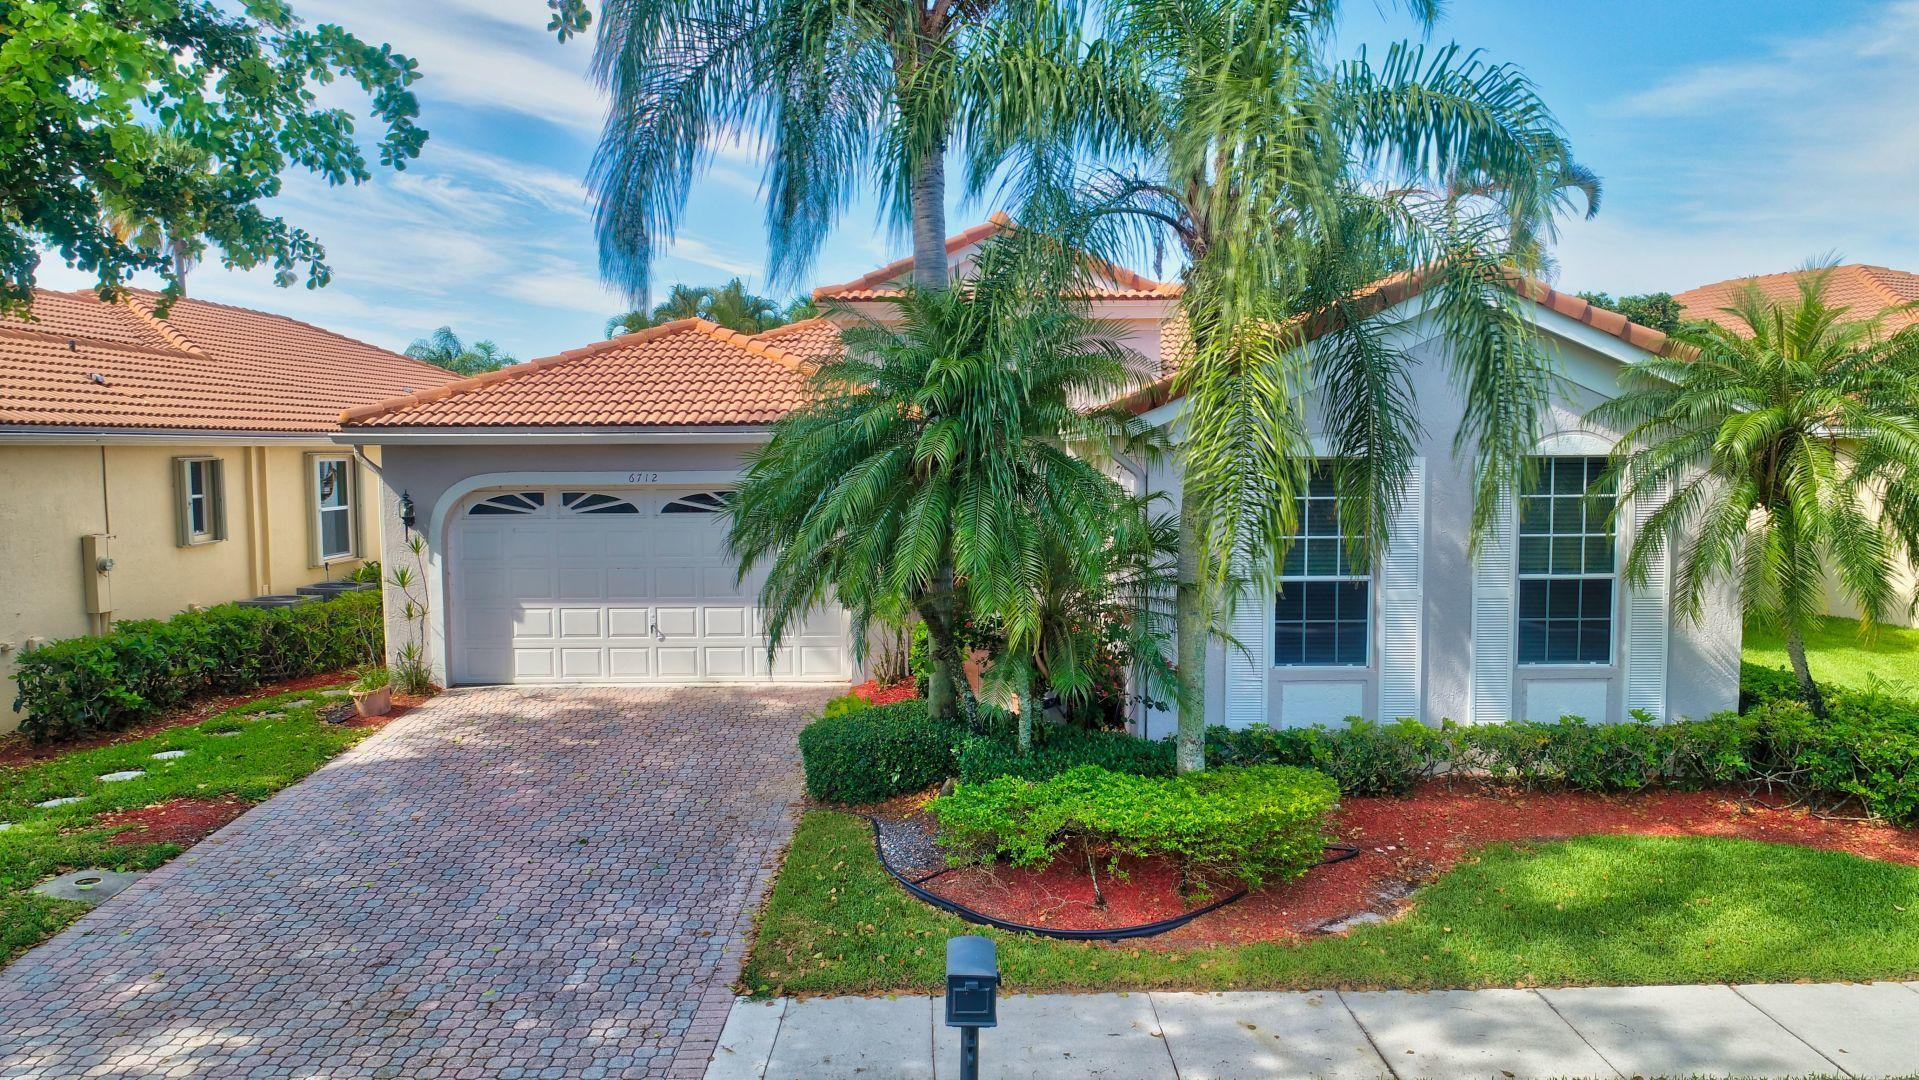 Photo of 6712 Portside Drive, Boca Raton, FL 33496